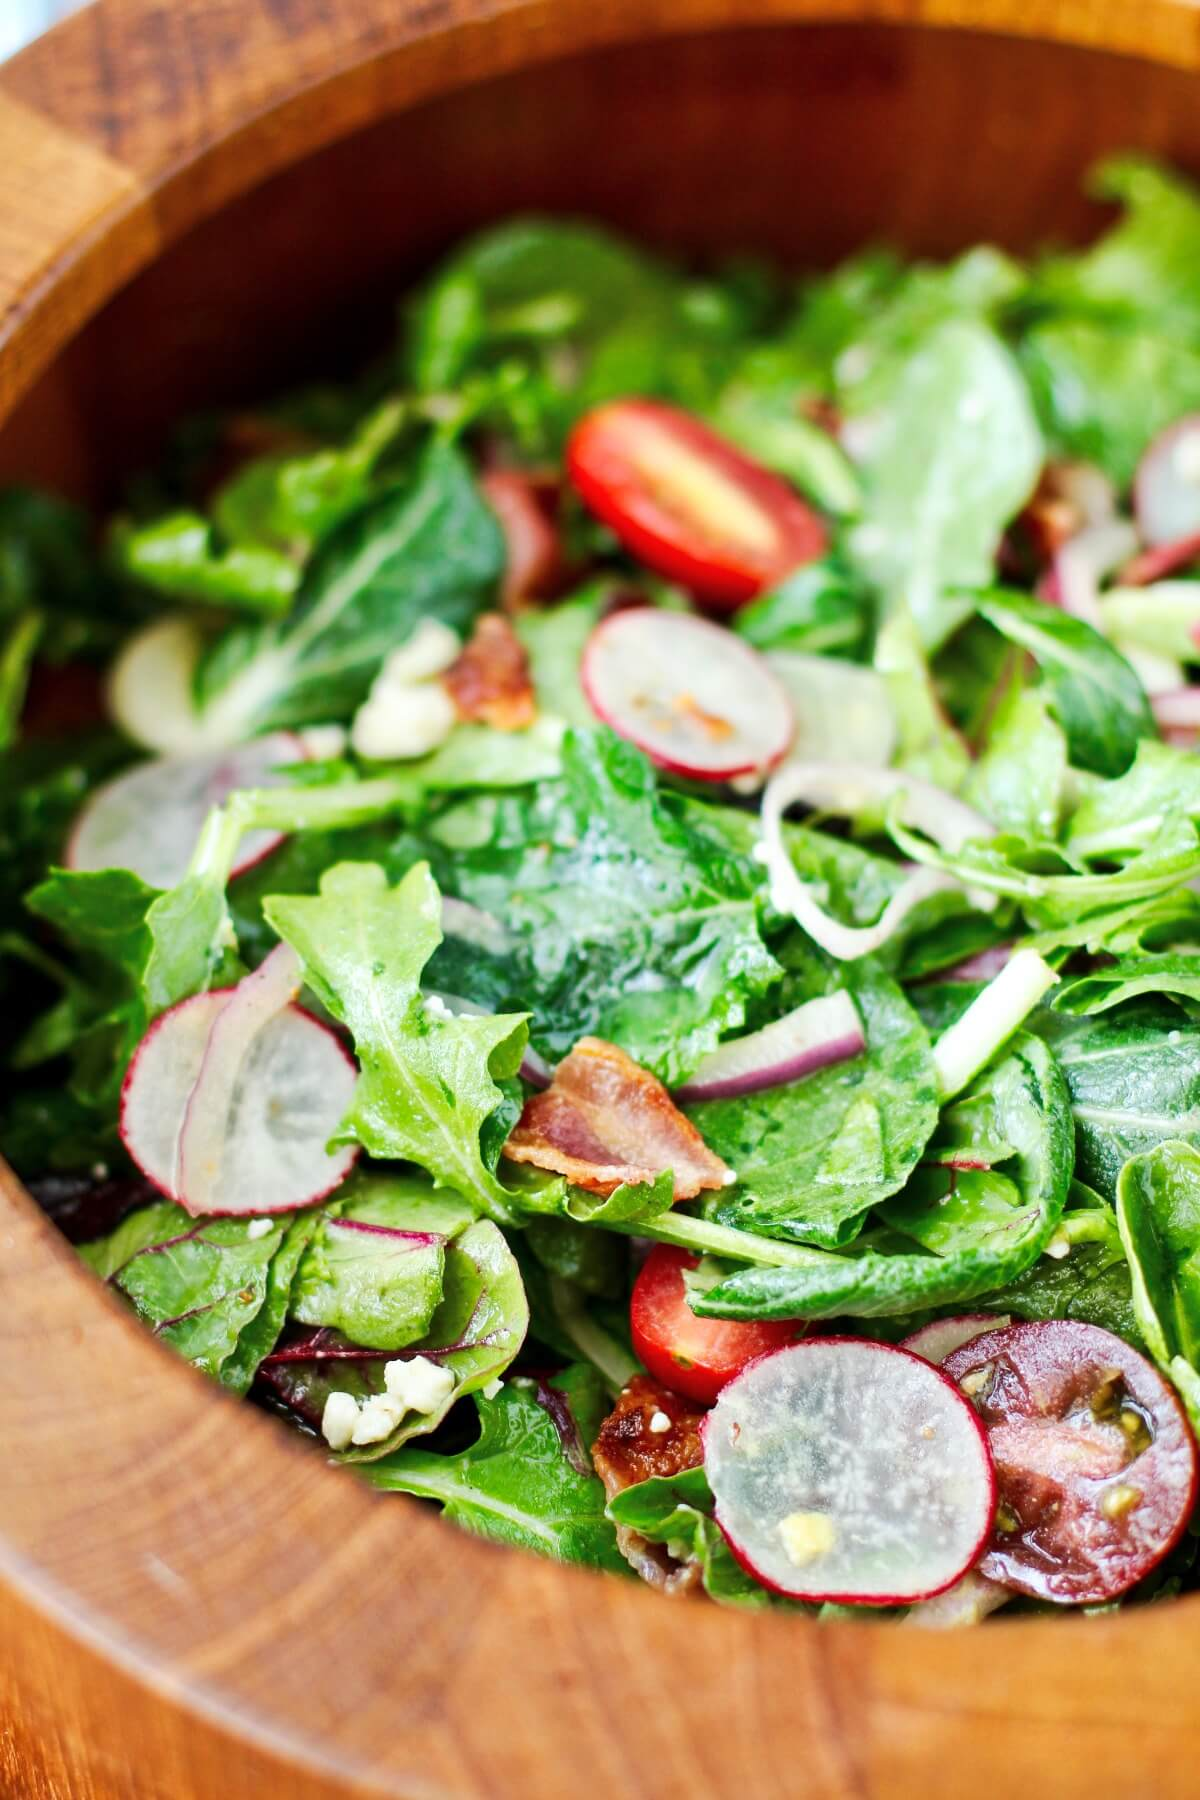 Wilted Greens salad in salad bowl